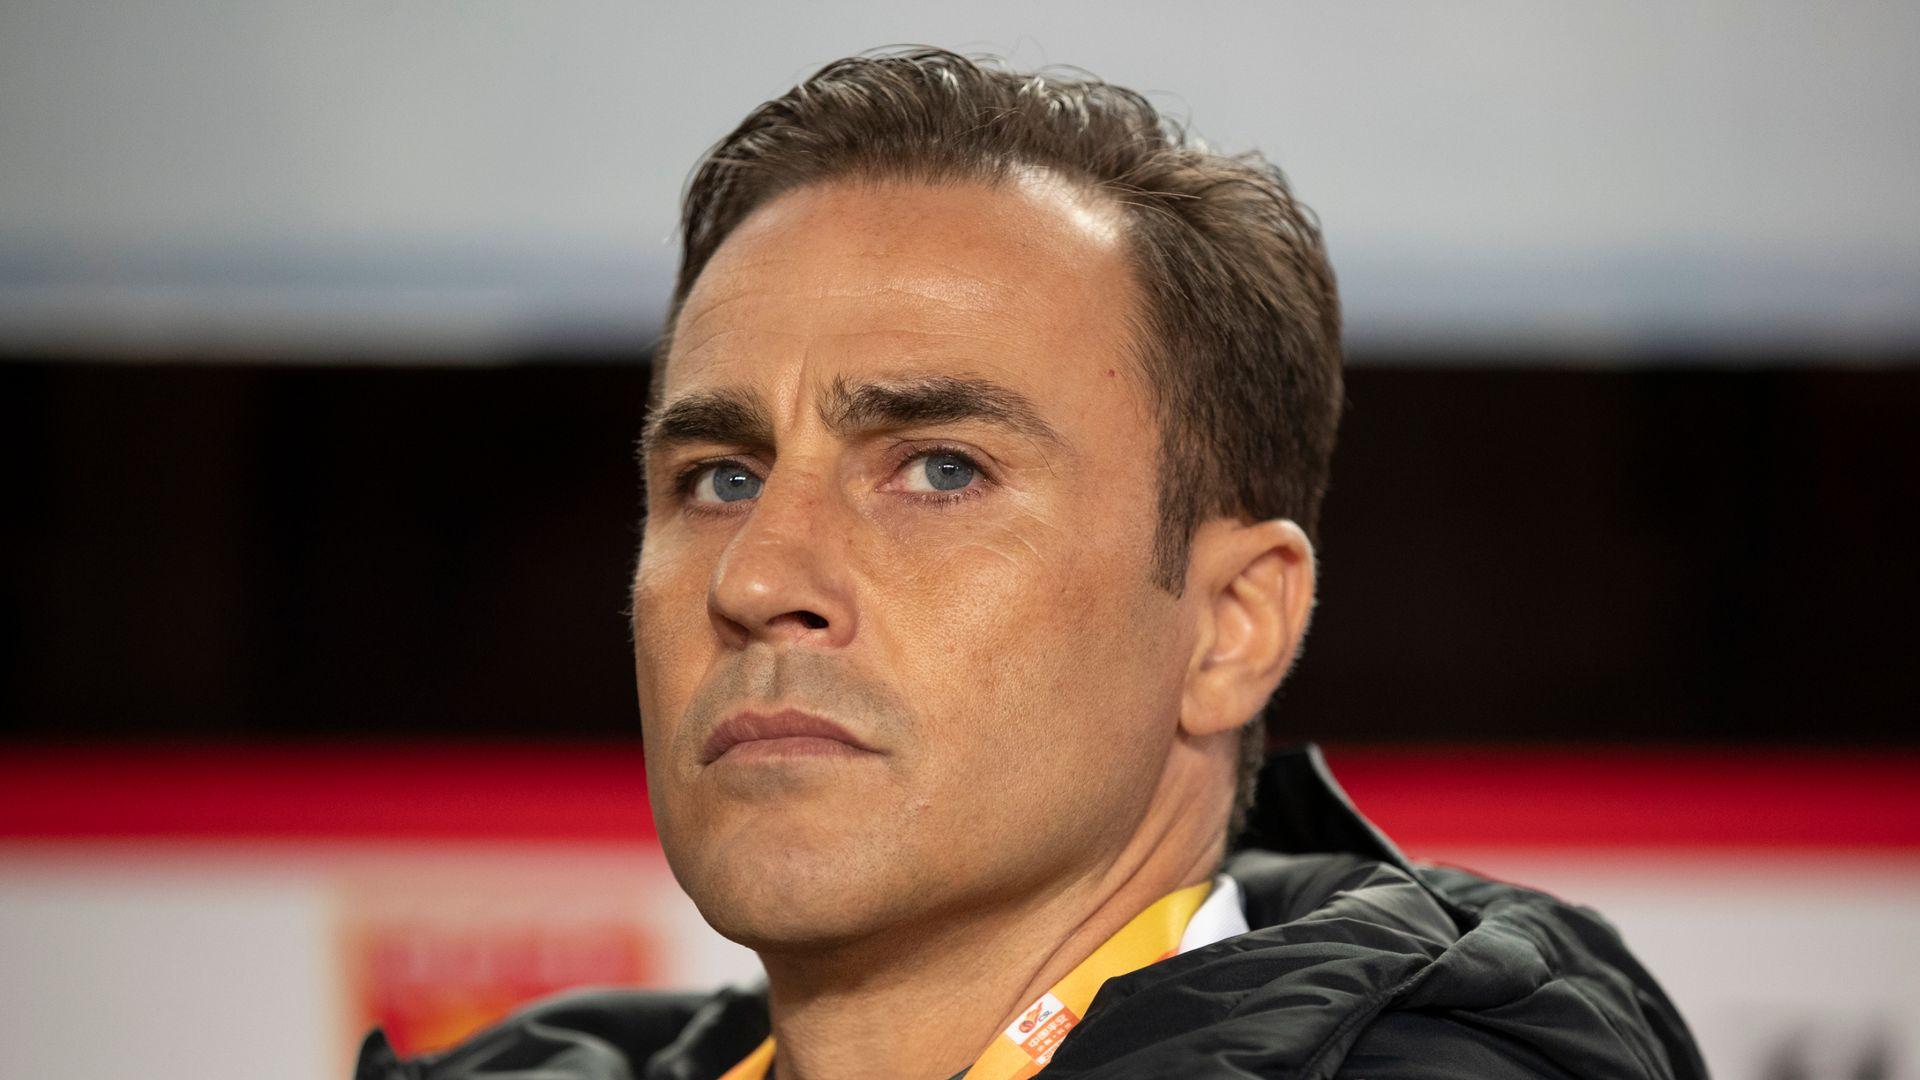 Cannavaro inspired by 'Klopp mentality' & 'Pep culture'